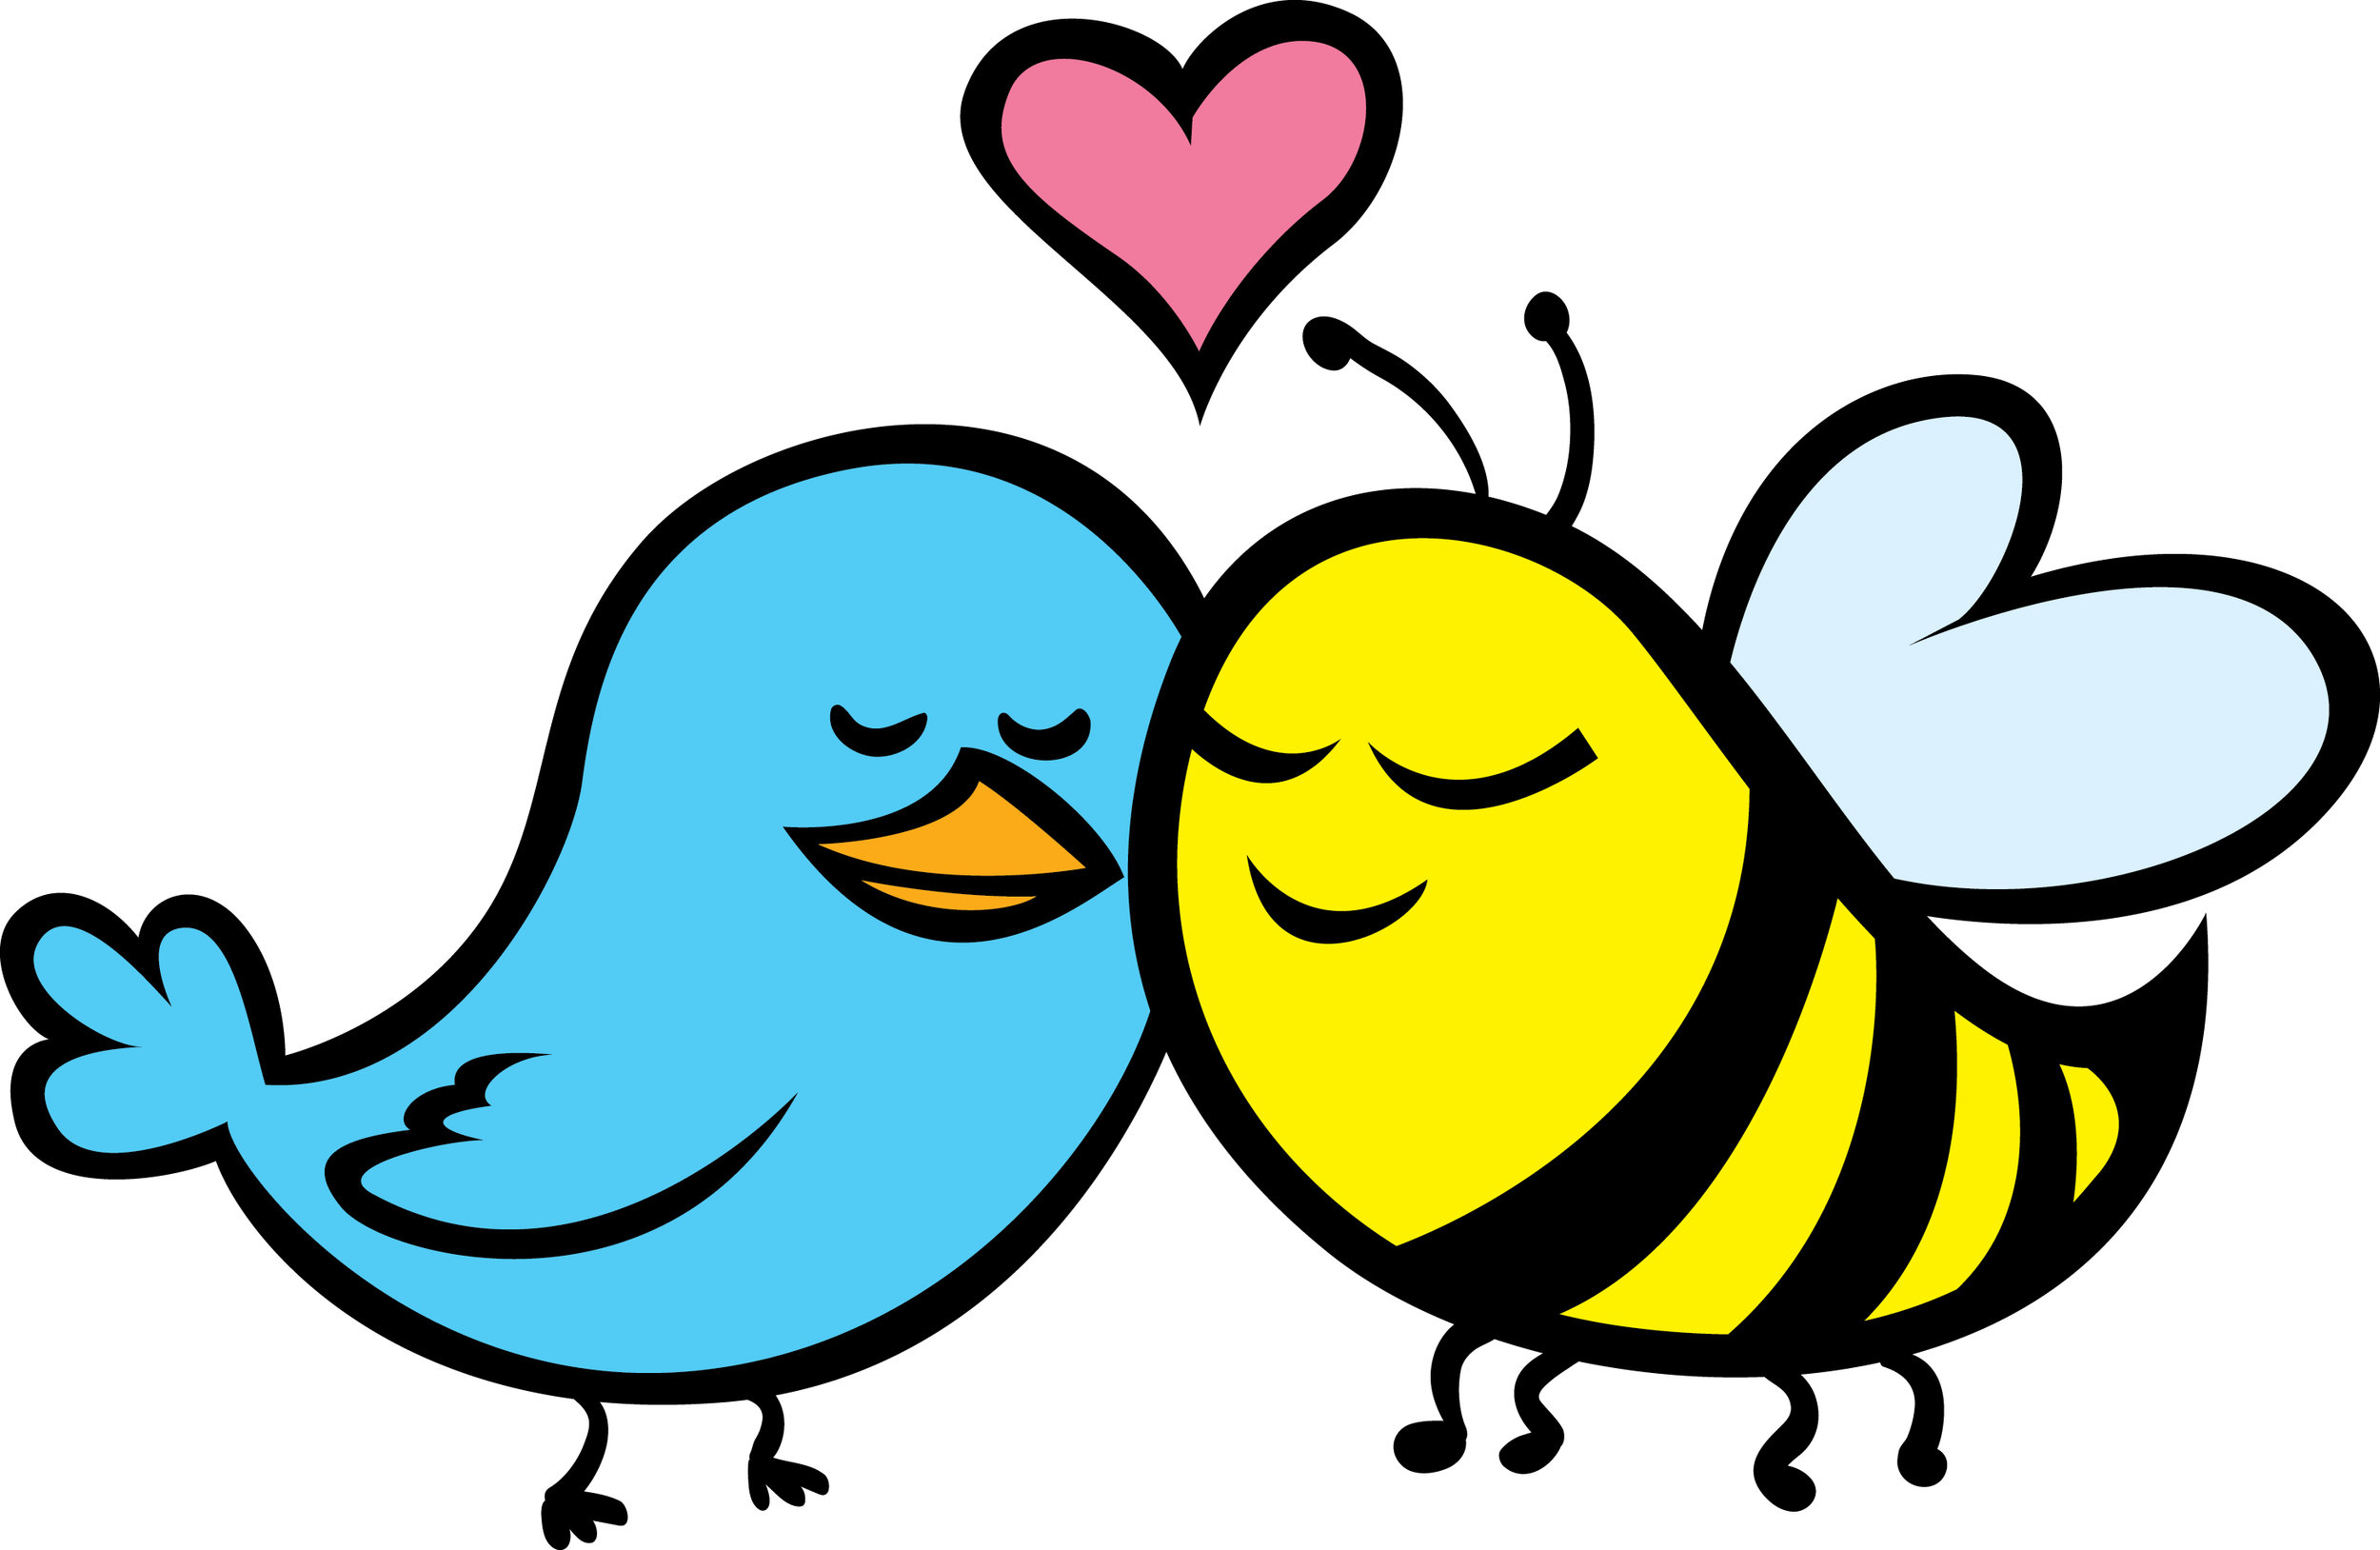 birds-and-bees-sex-education.jpg